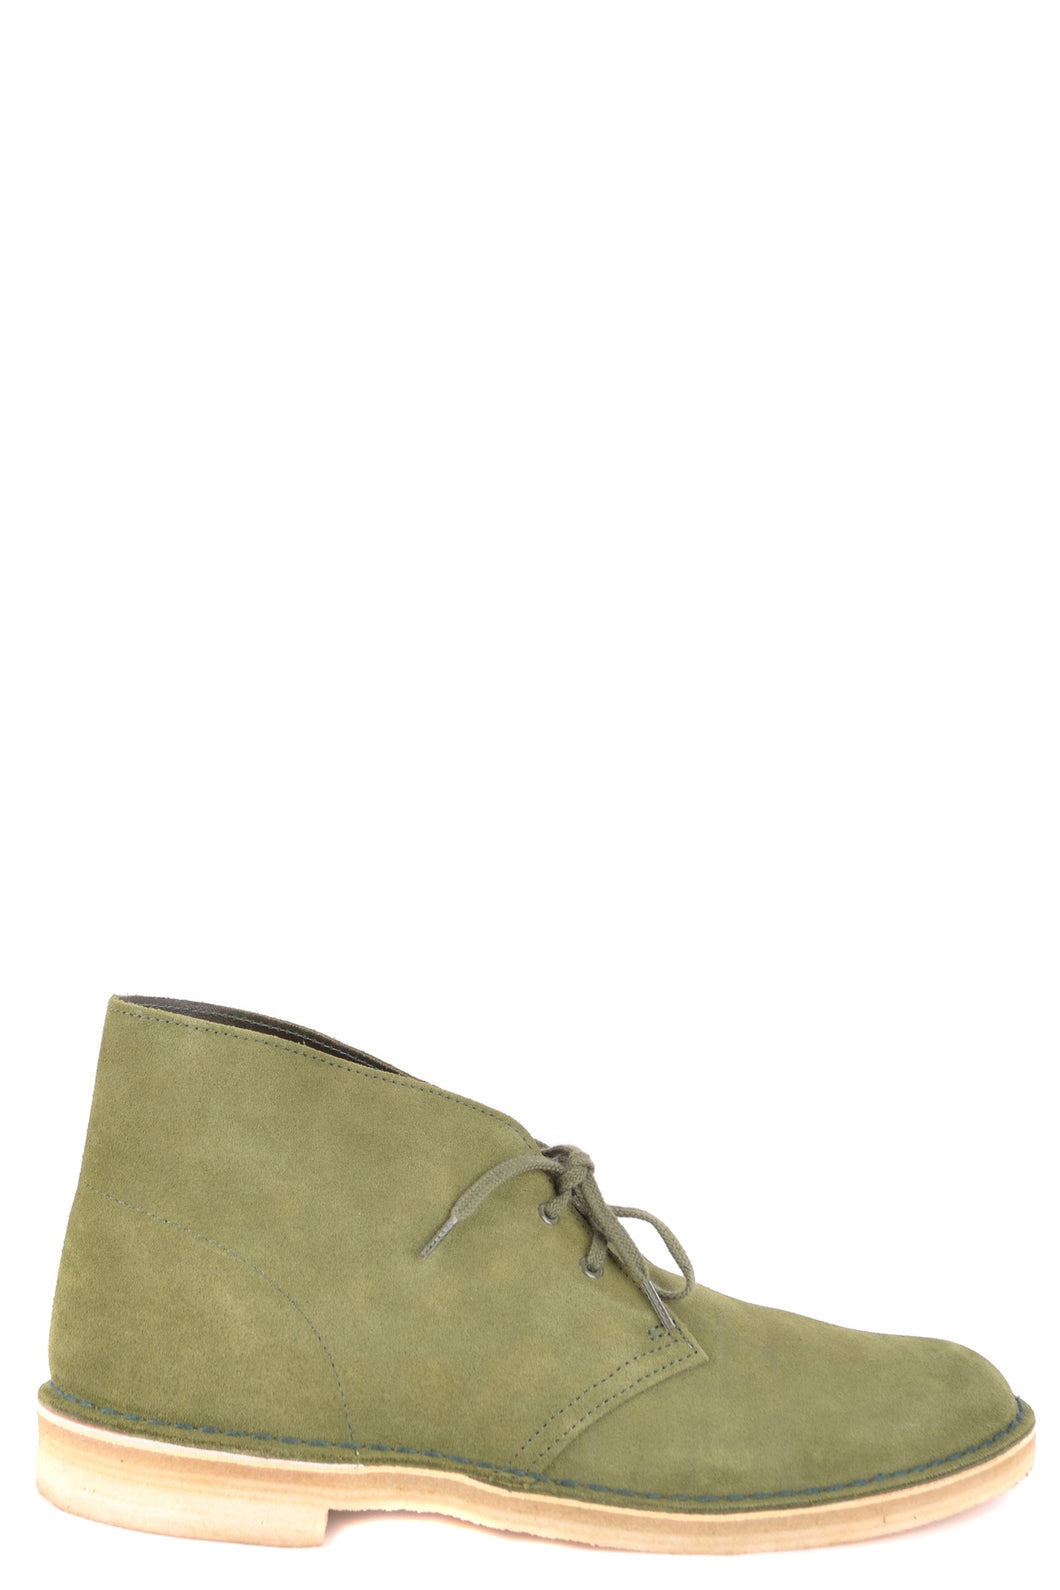 New Men's Clarks Boots in Green, Multi sizes available